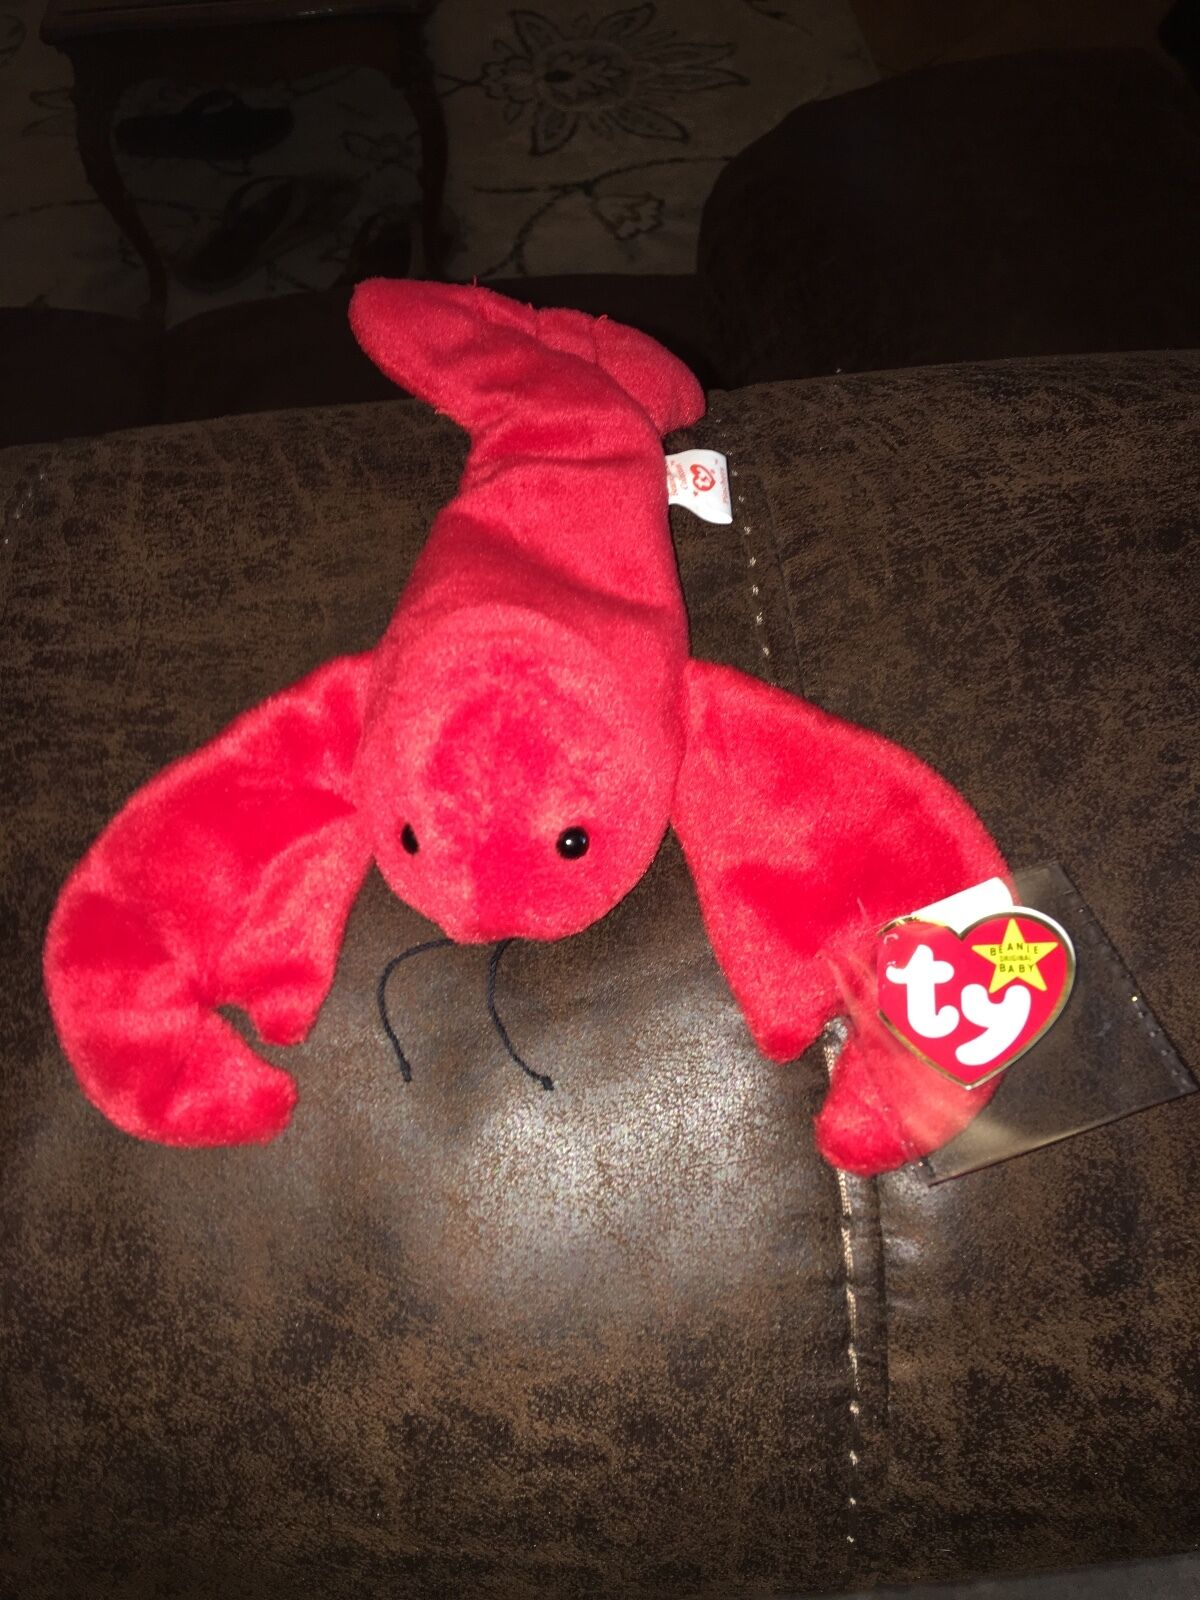 Original mint condition pinchers beanie baby from original 9 with pvc pellets